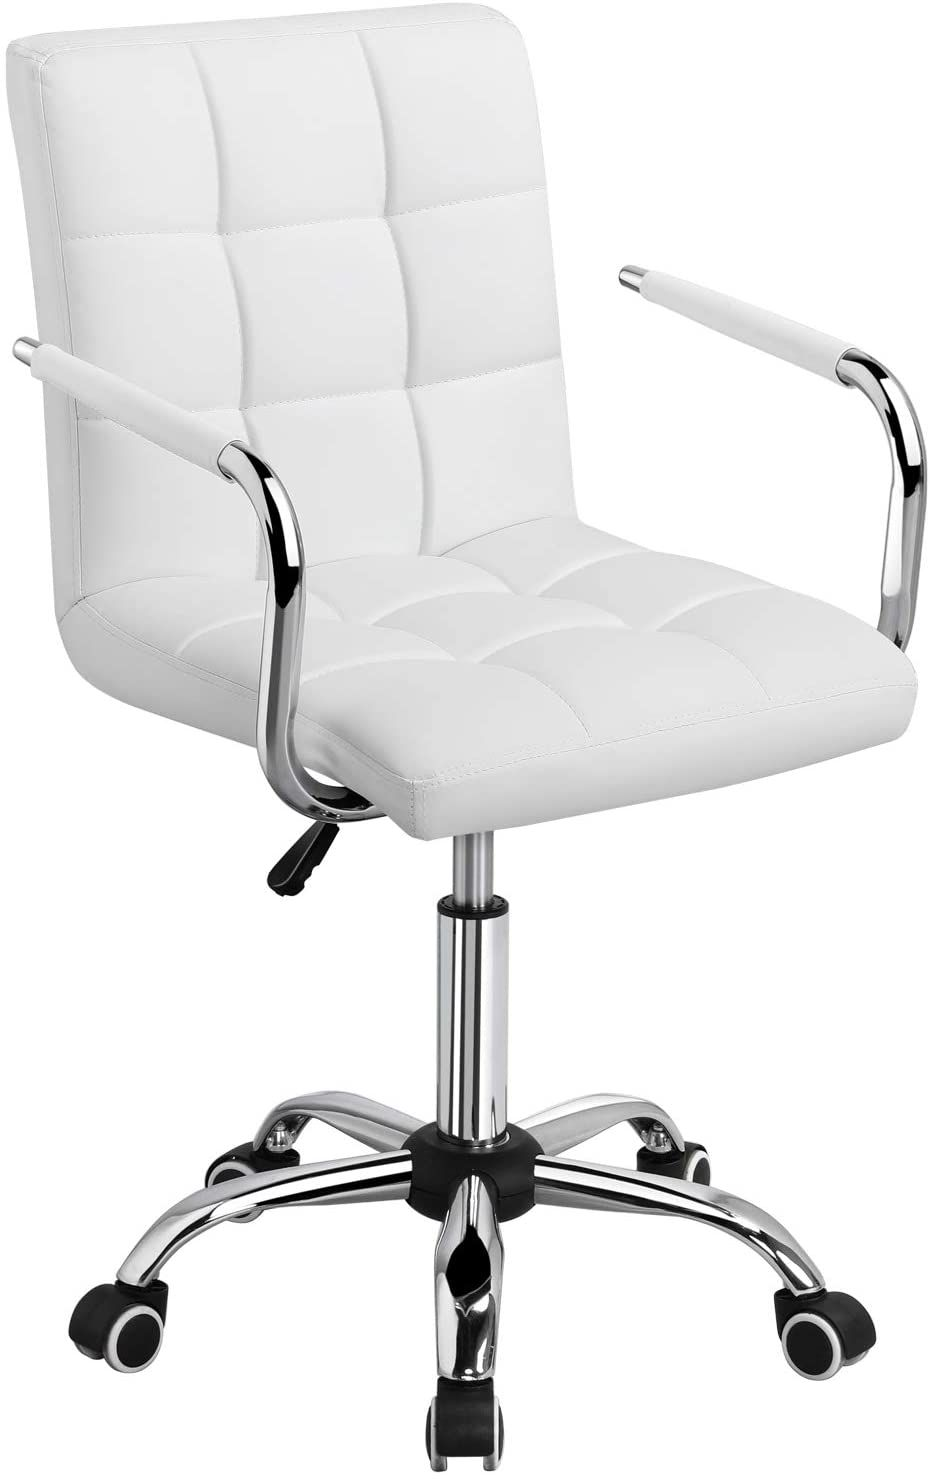 Modern White Chair In 2020 White Office Chair White Desk Chair No Wheels Leather Office Chair